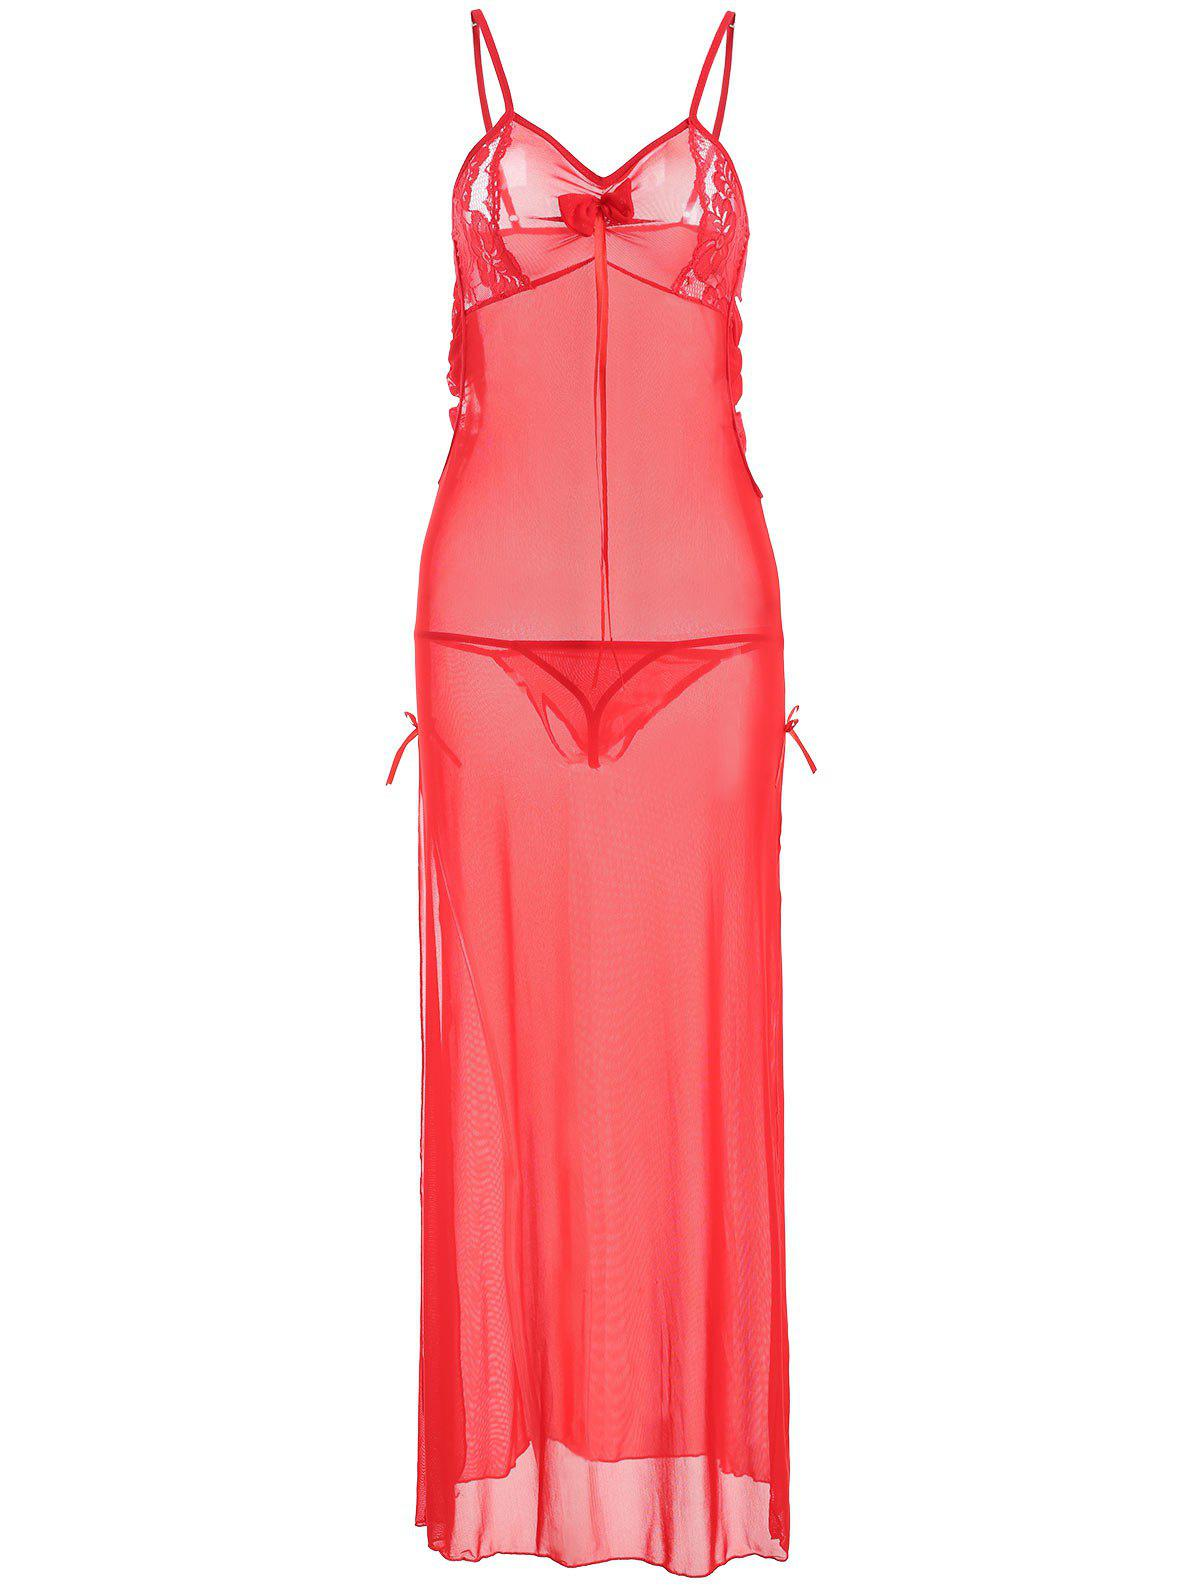 Slit Mesh Sheer Long Cami Babydoll - RED ONE SIZE